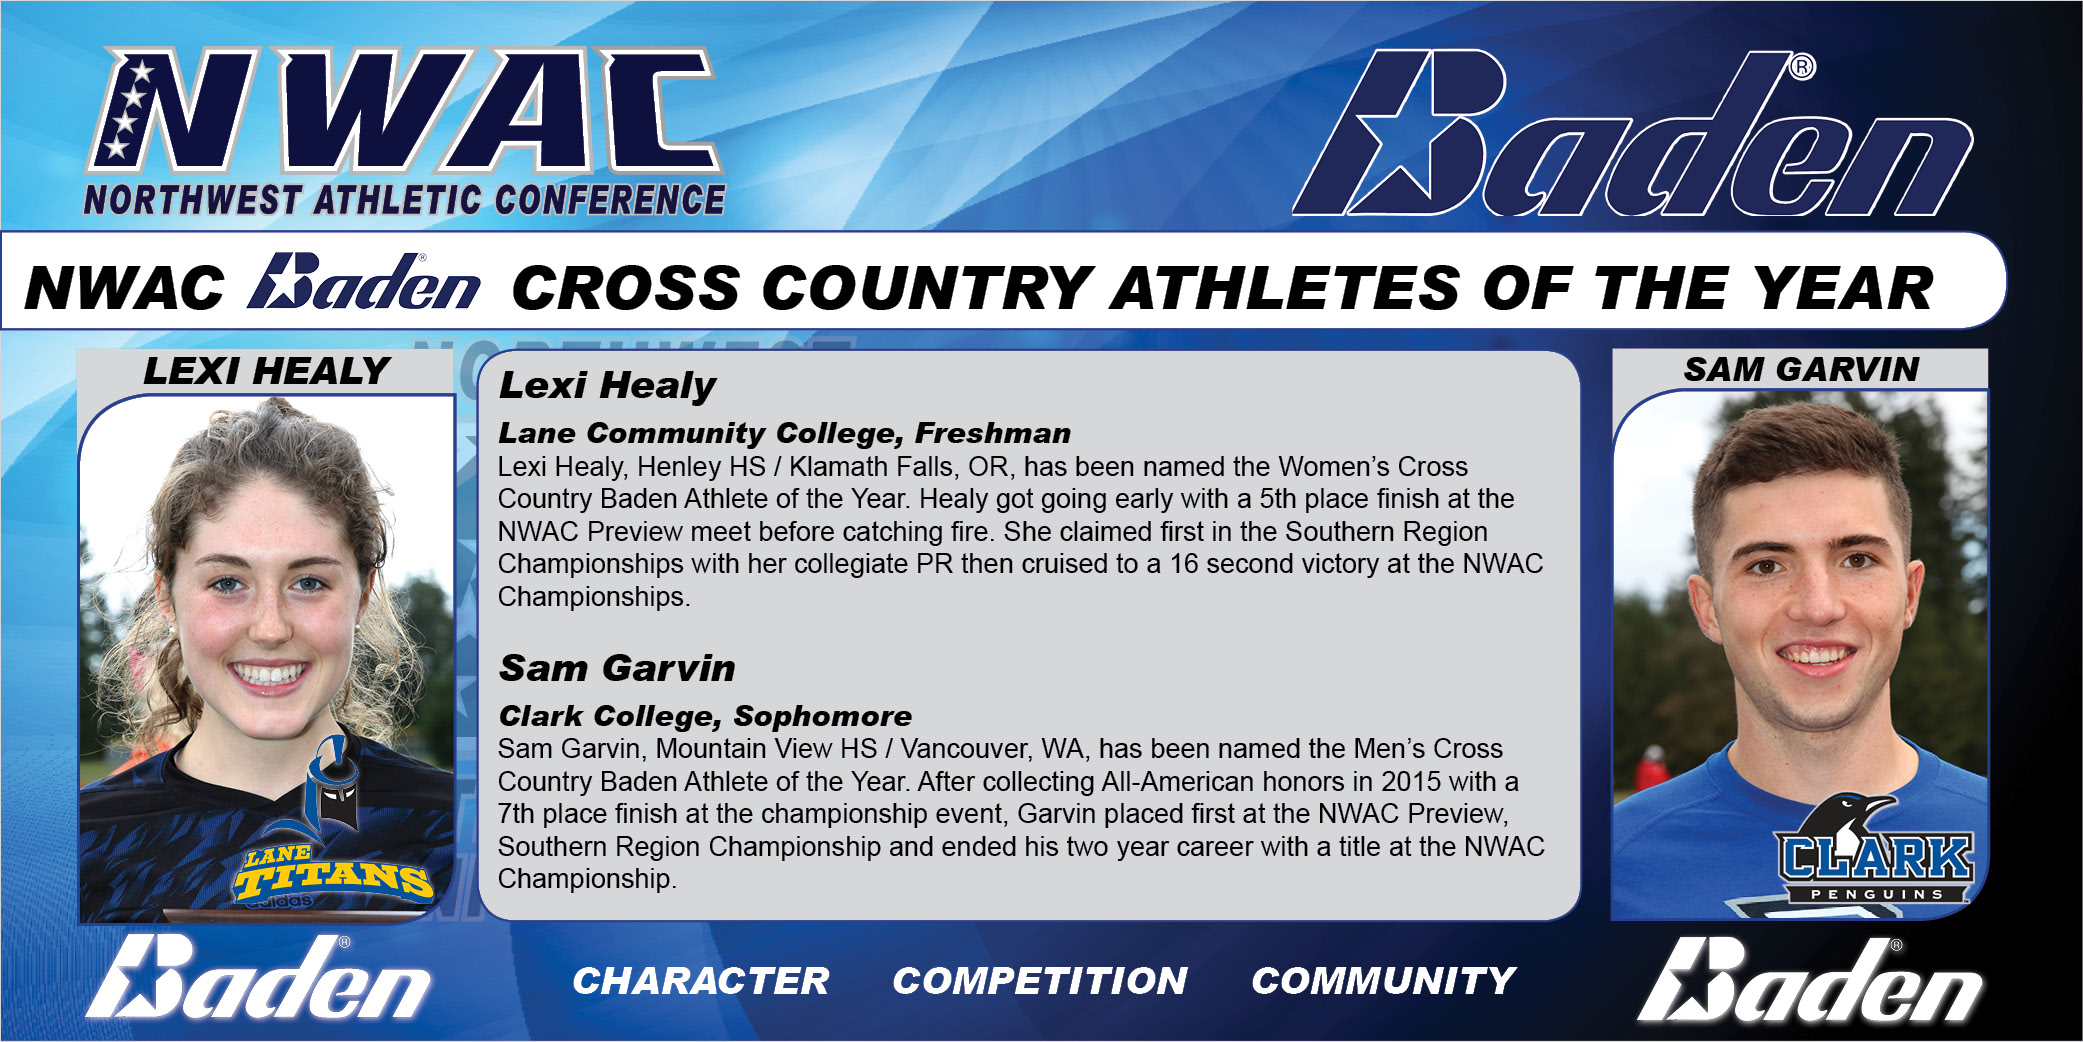 Lexu Healy and Sam Garvin Baden Cross Country Athletes  of the Year